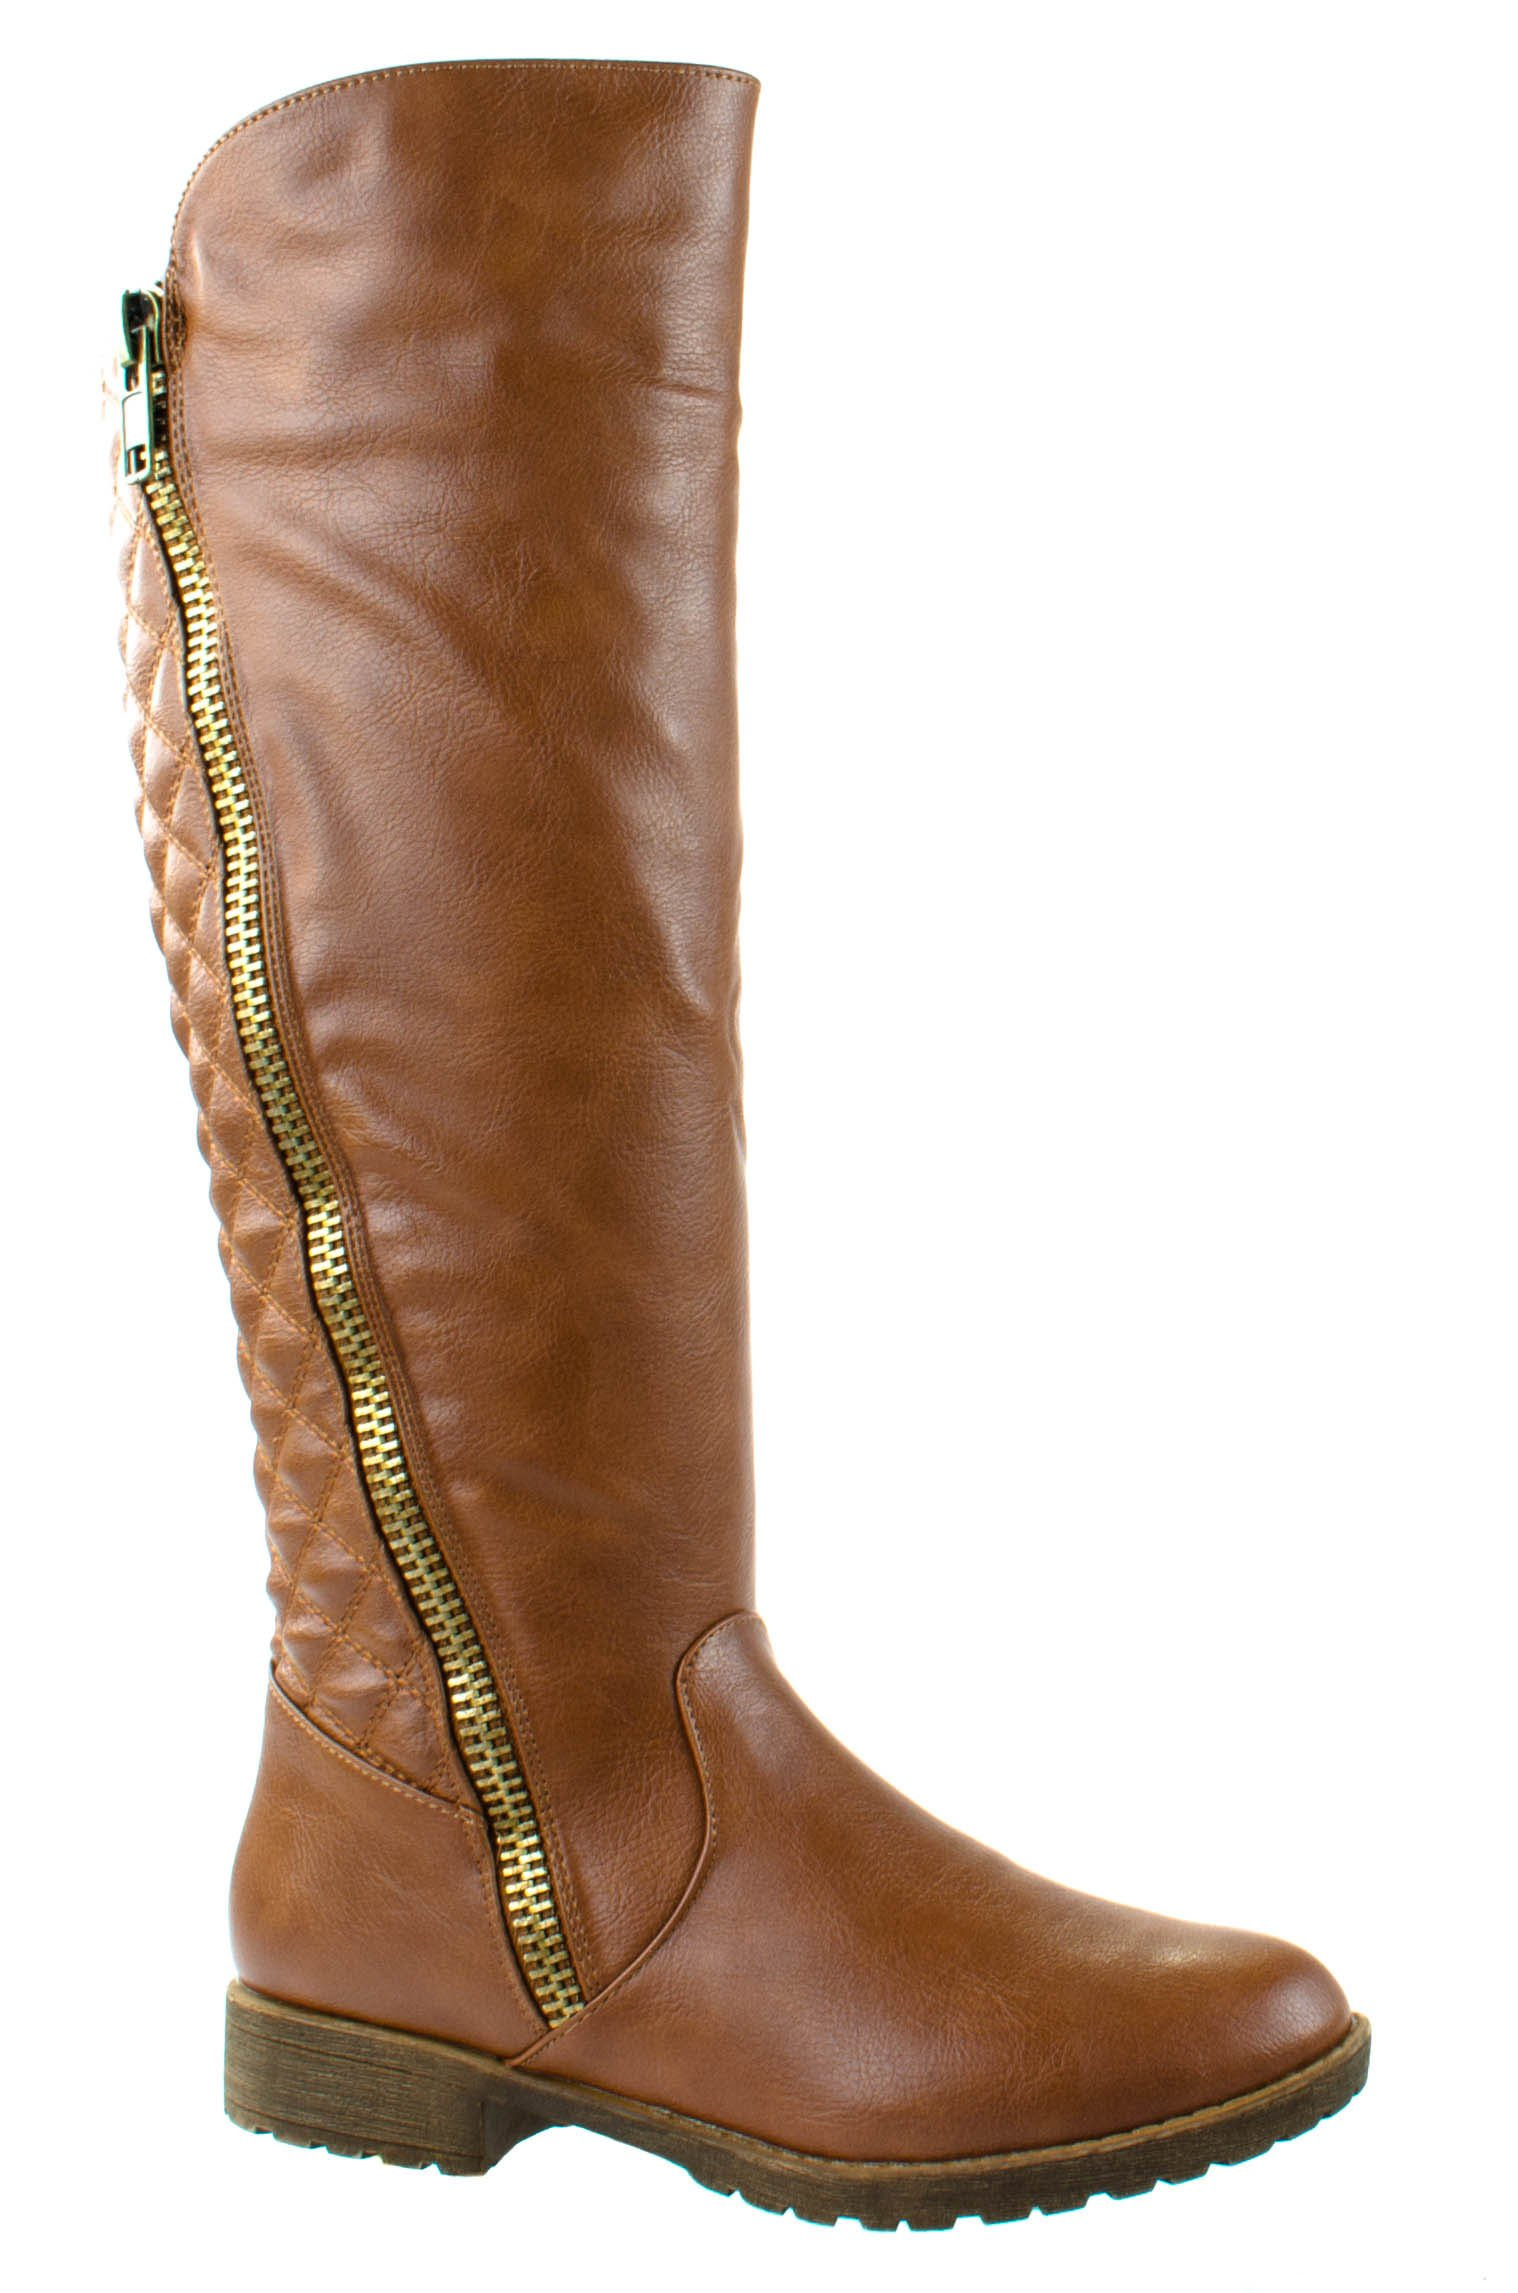 Bamboo Shoes Women's Monterey-07 Chestnut Quilted Pattern Knee High Boots 9 D(M) US